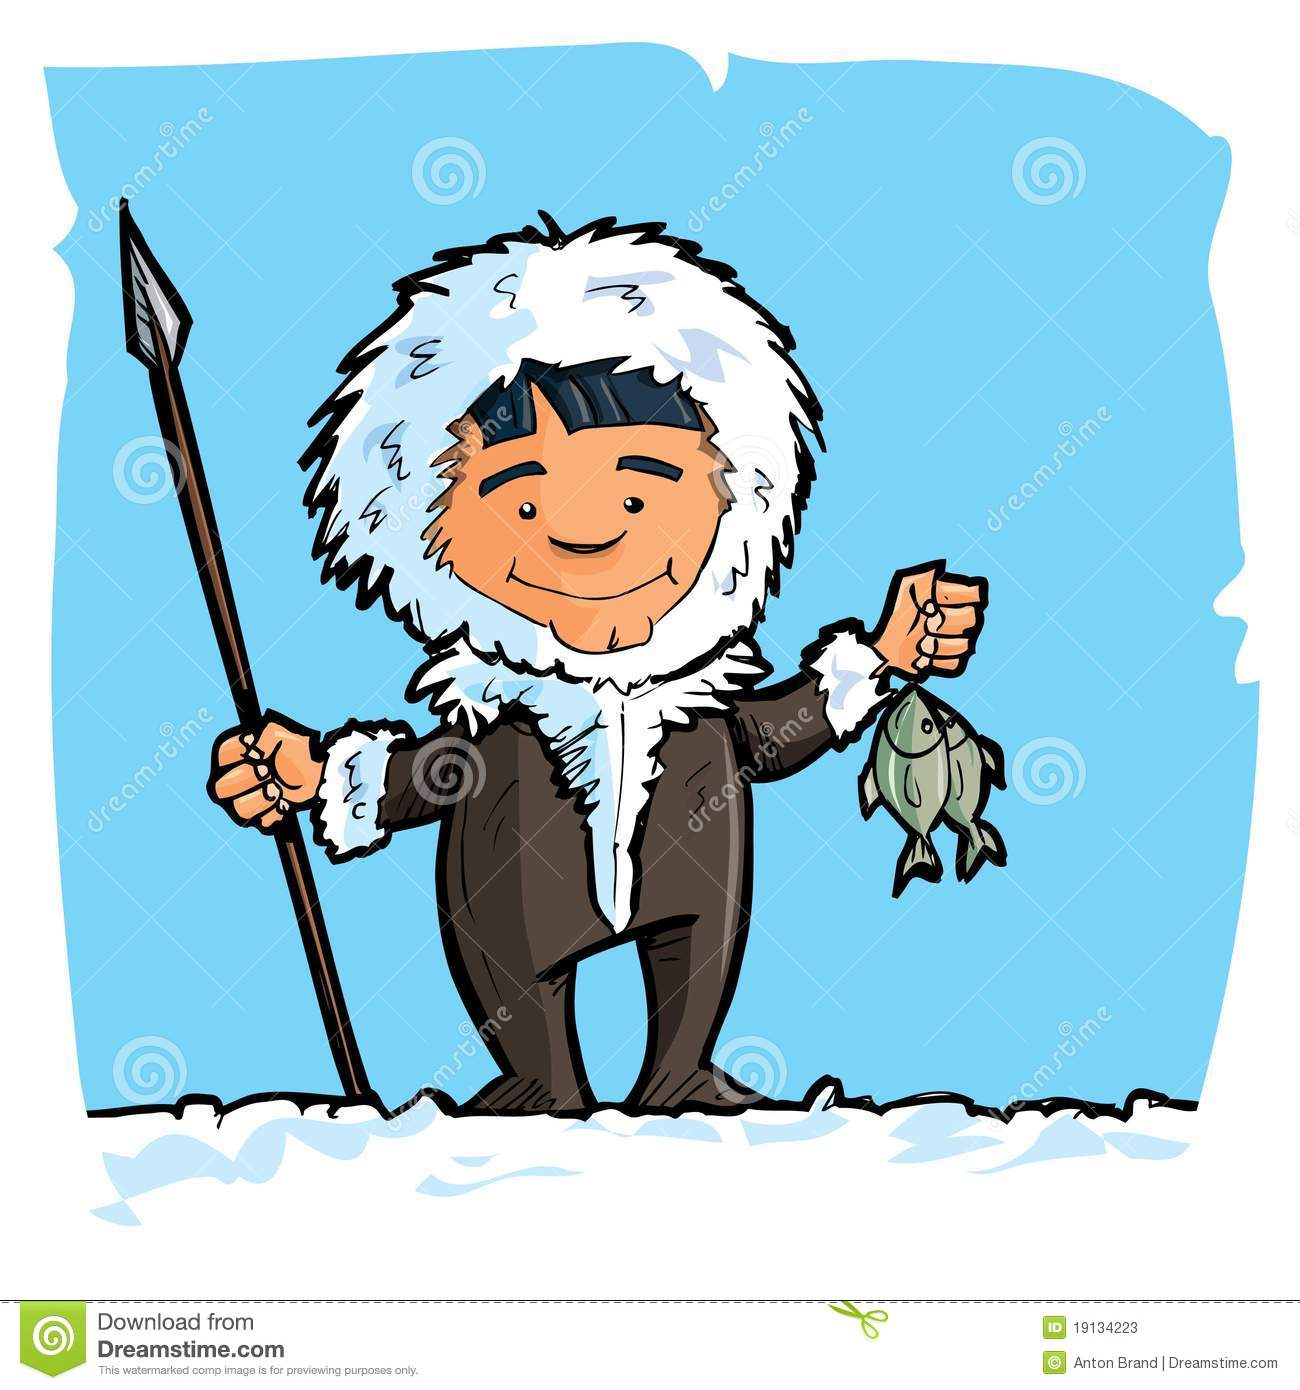 Cartoon eskimo with a spear and a fish S-Cartoon eskimo with a spear and a fish Stock Photos-19